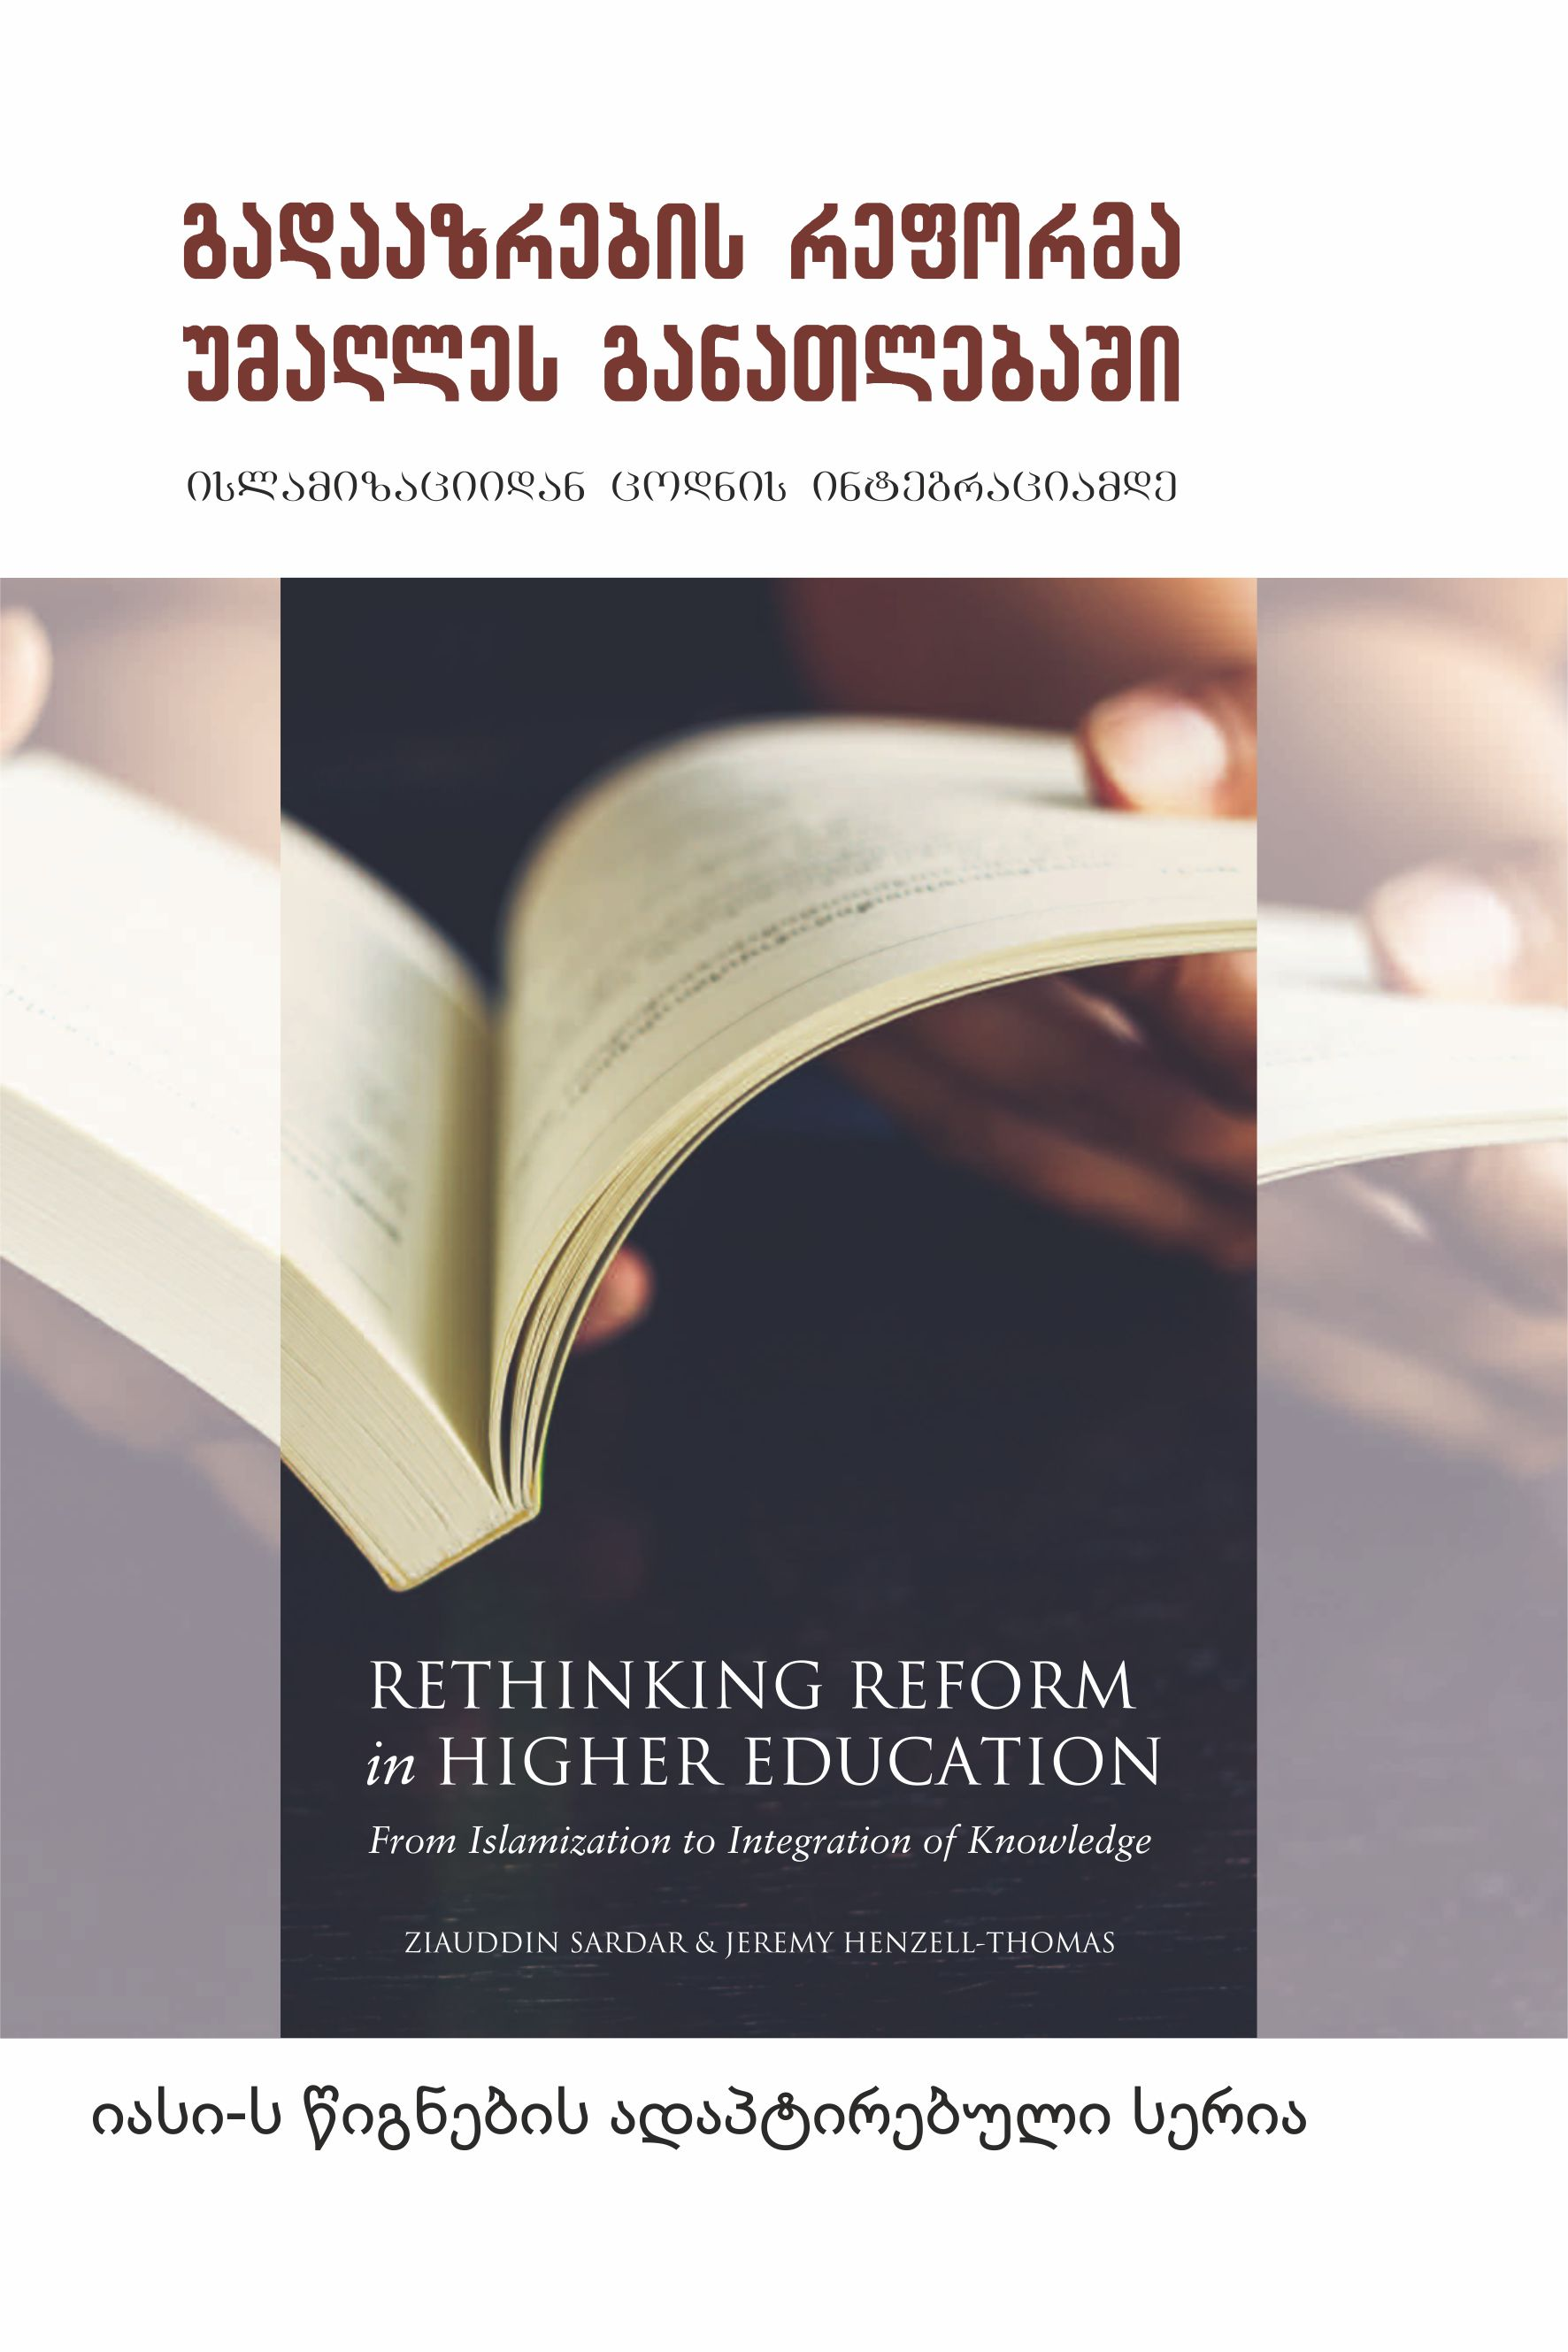 Rethinking Reform in Higher Education: From Islamization to Integration of Knowledge by Ziauddin Sardar and Jeremy Henzell-Thomas